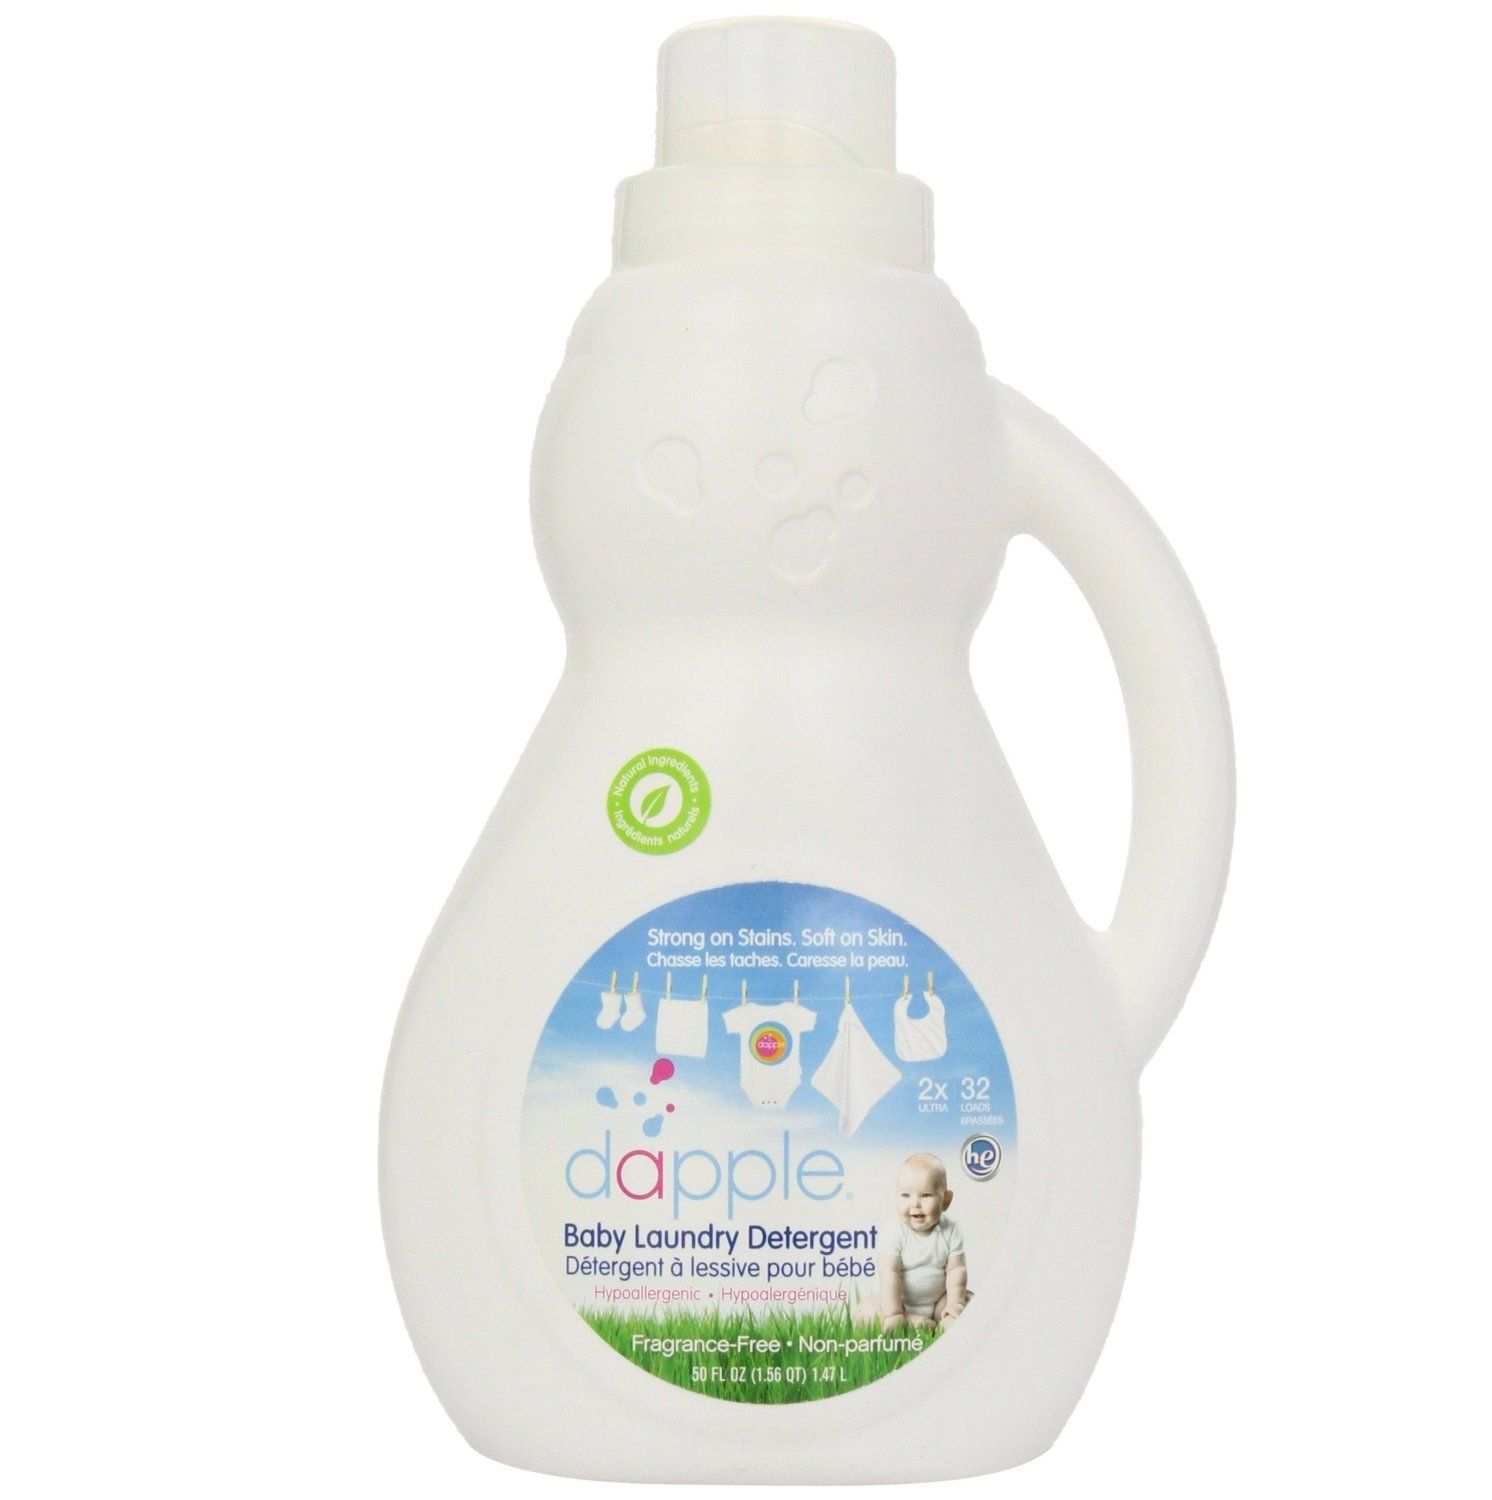 Dapple Baby Laundry Detergent You Can Find More Details By